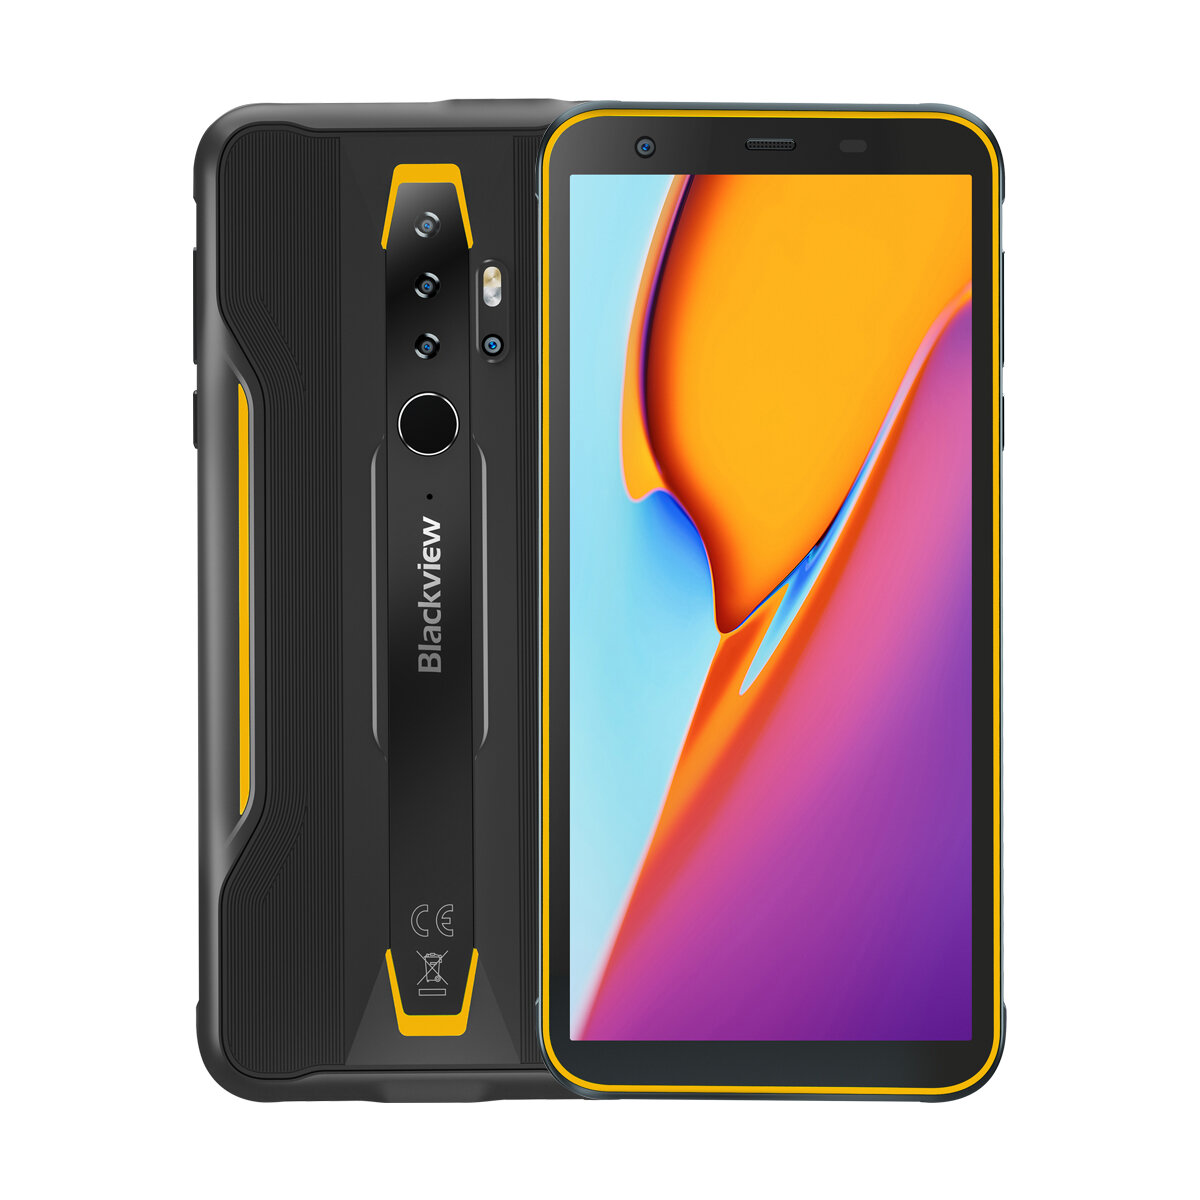 Blackview BV6300 Pro Global Bands IP68/IP69K Waterproof 5.7 inch NFC 4380mAh Android 10 16MP Quad Camera 6GB 128GB Helio P70 Octa Core 4G Smartphone - Yellow